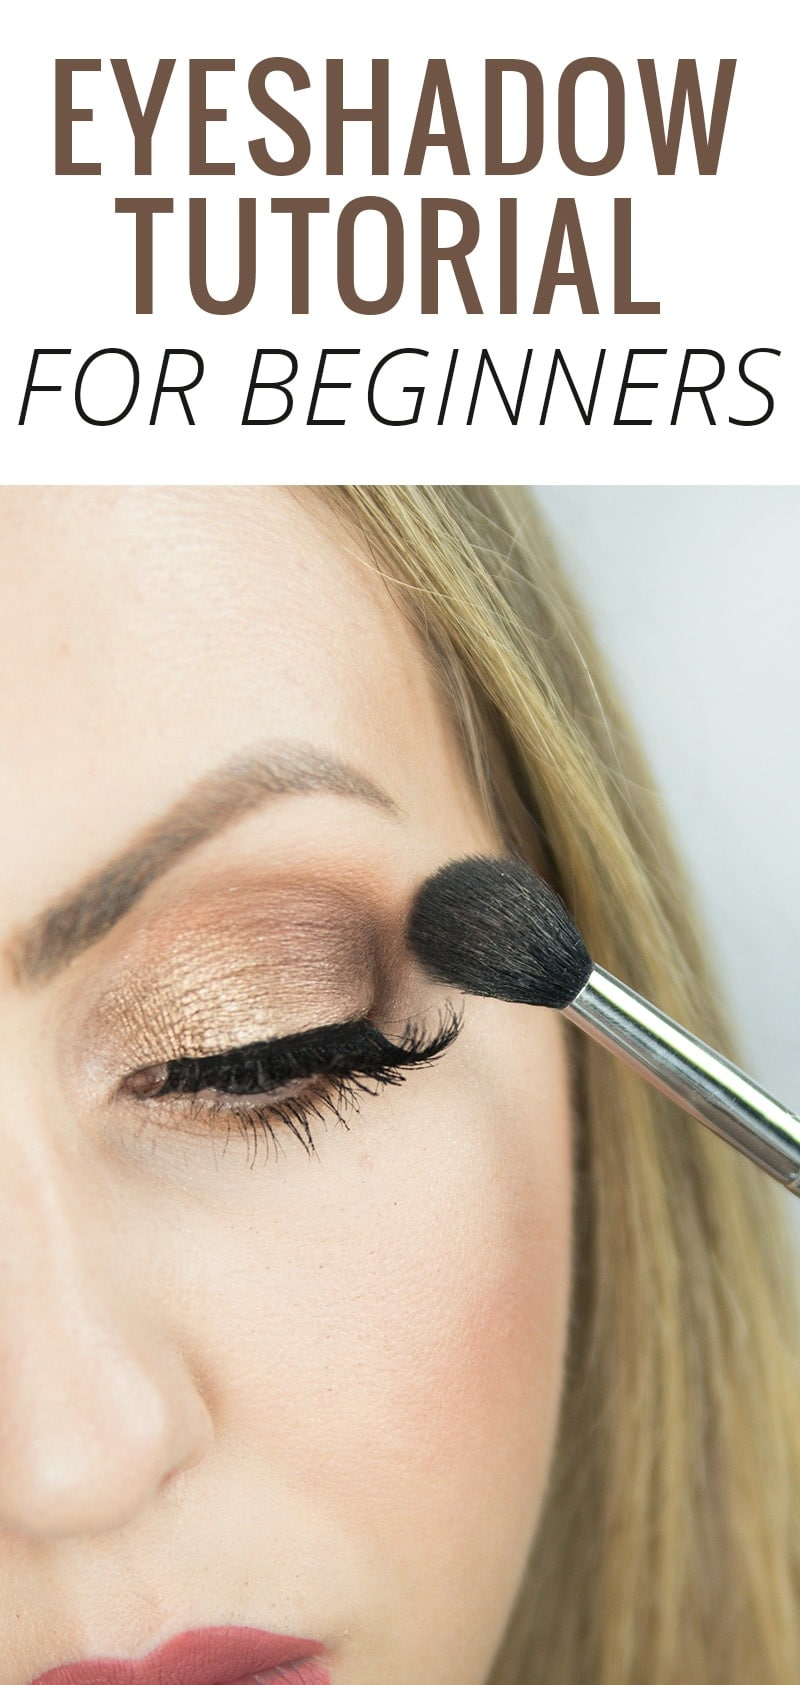 New to eyeshadow? Houston beauty blogger Meg O. on the Go gives us a step by step eyeshadow tutorial for beginners. Read more and master the look! #beauty #makeup #makeuptutorial #eyeshadow #eyeshadowtutorial #beautyblogger #beautyblog